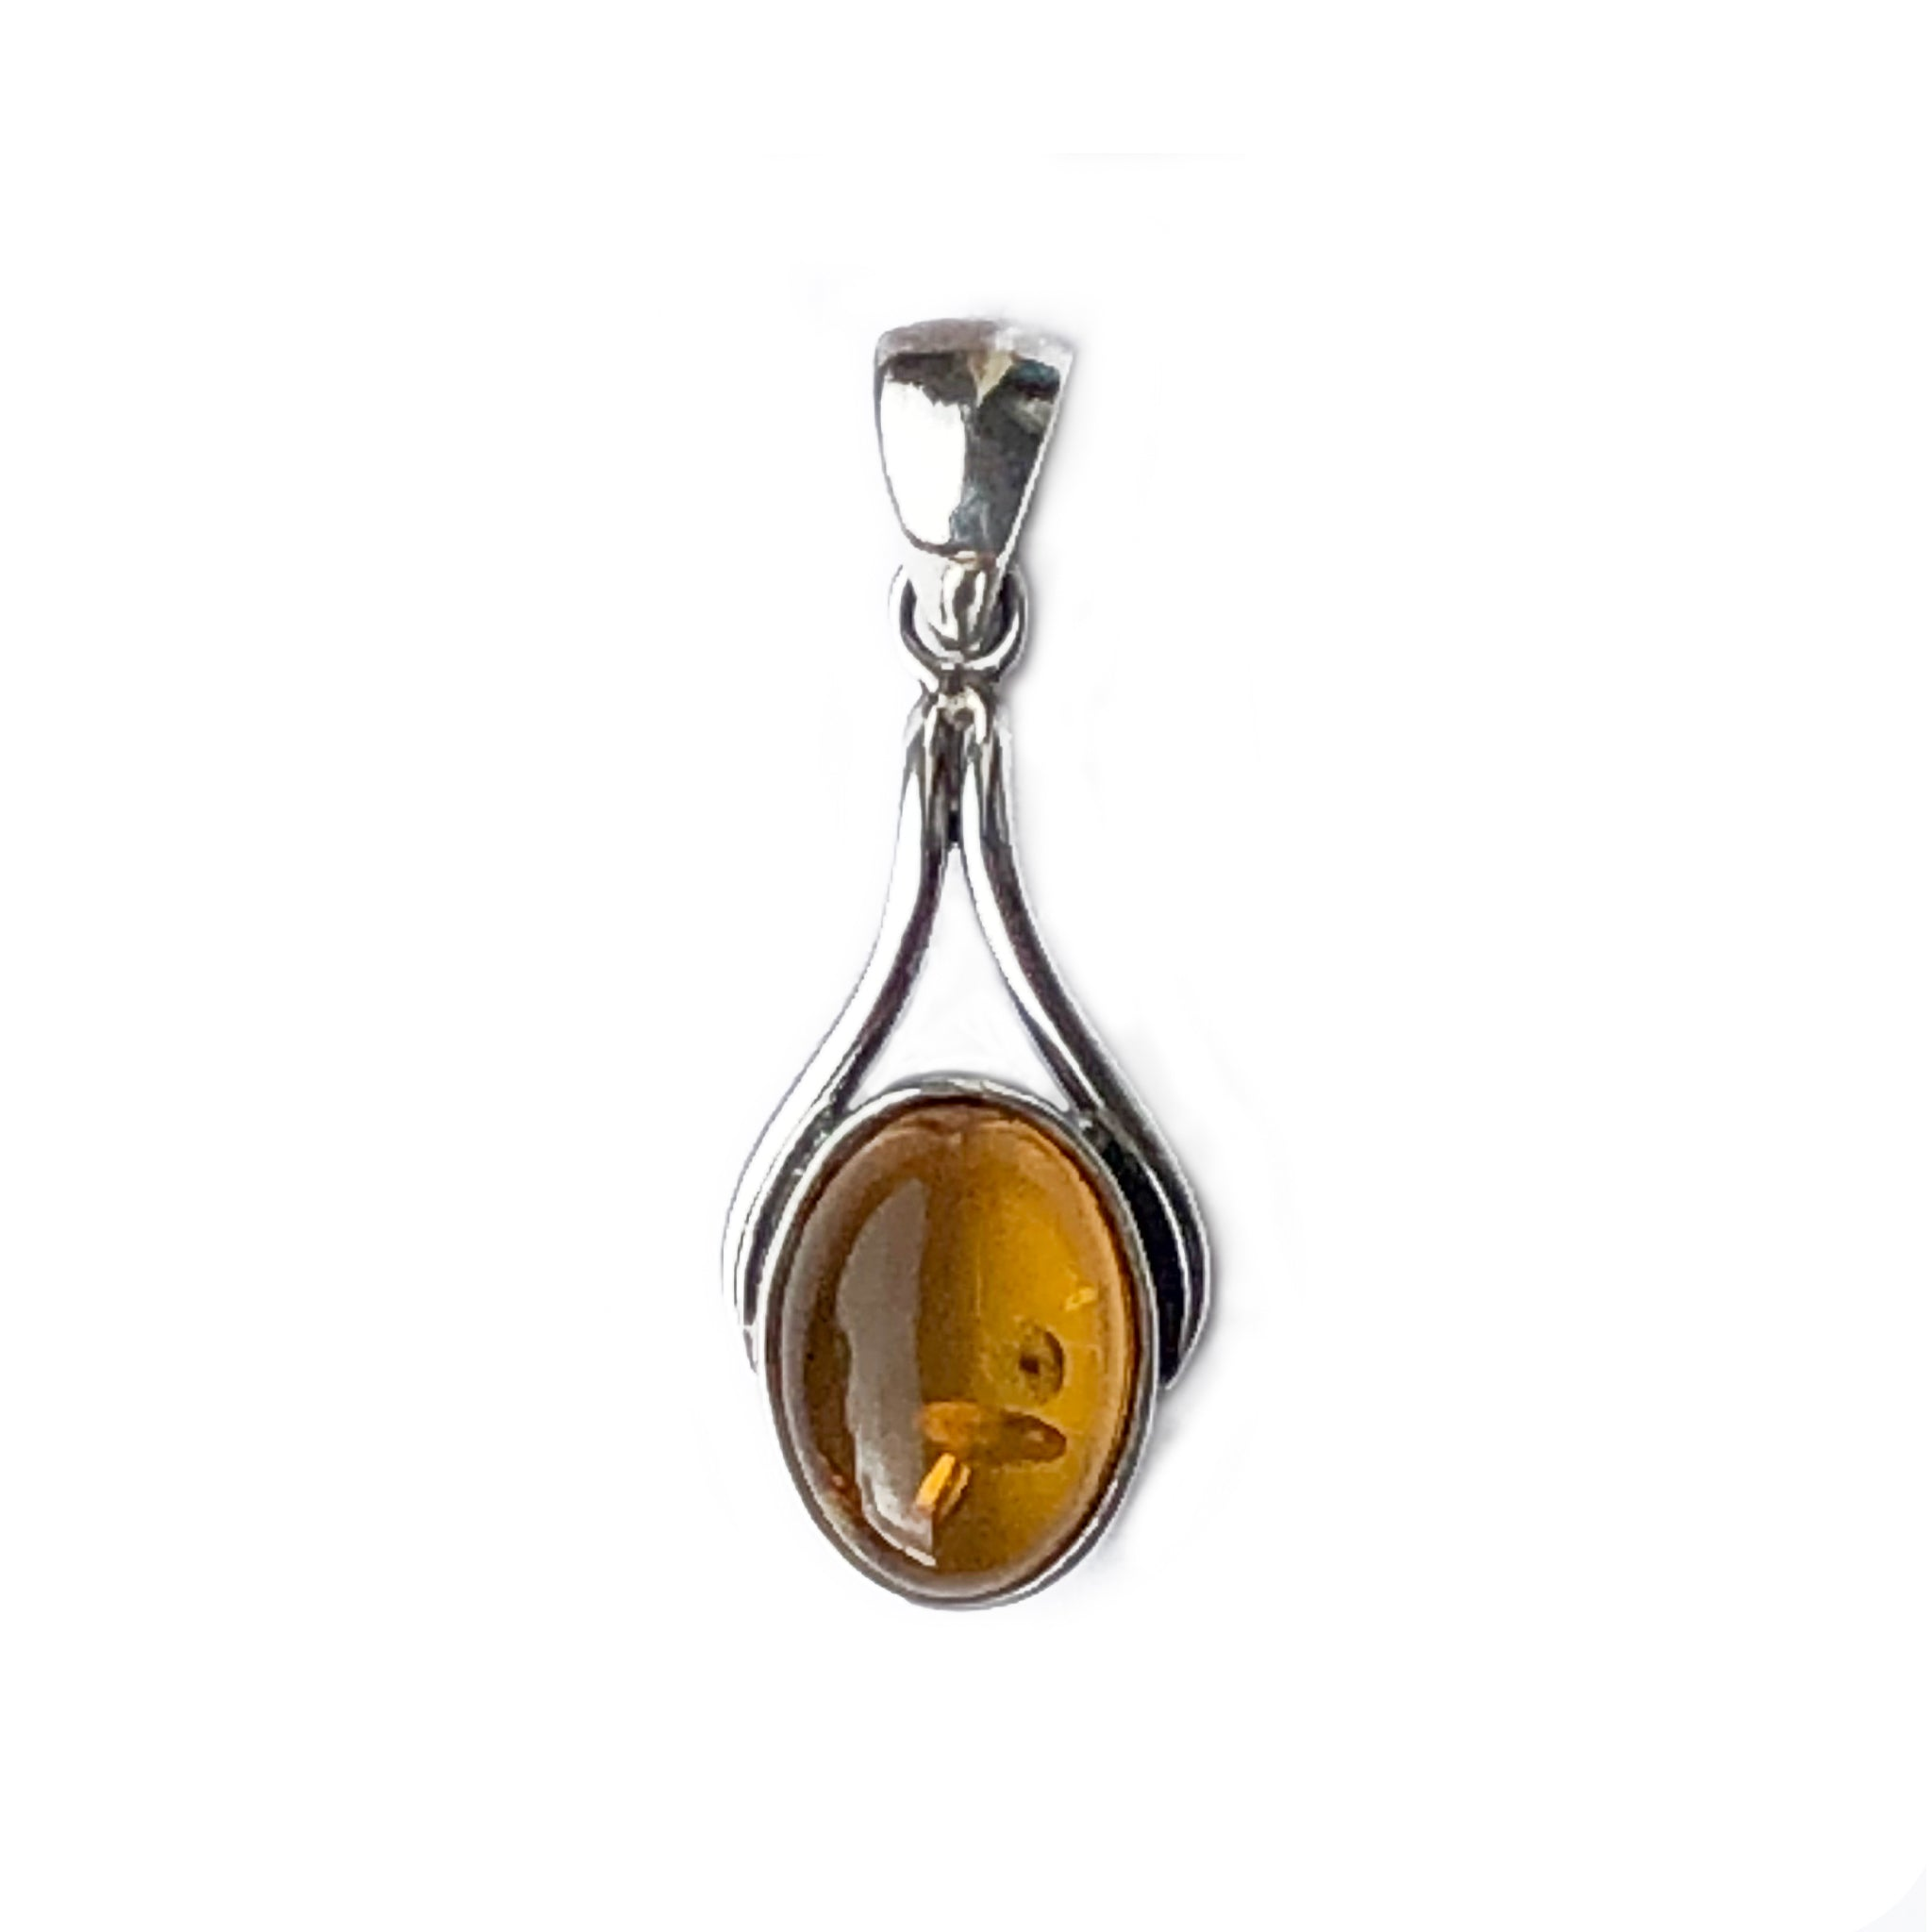 The Amber Centre. This lovely small piece of cognac amber is full of life with its interesting inclusions.  The silver support and bail with its little twist at the top add interest without detracting from the amber itself.  Amber measures 18mm long x 9mm wide. The bail adds another 8mm to the full length of the pendant.